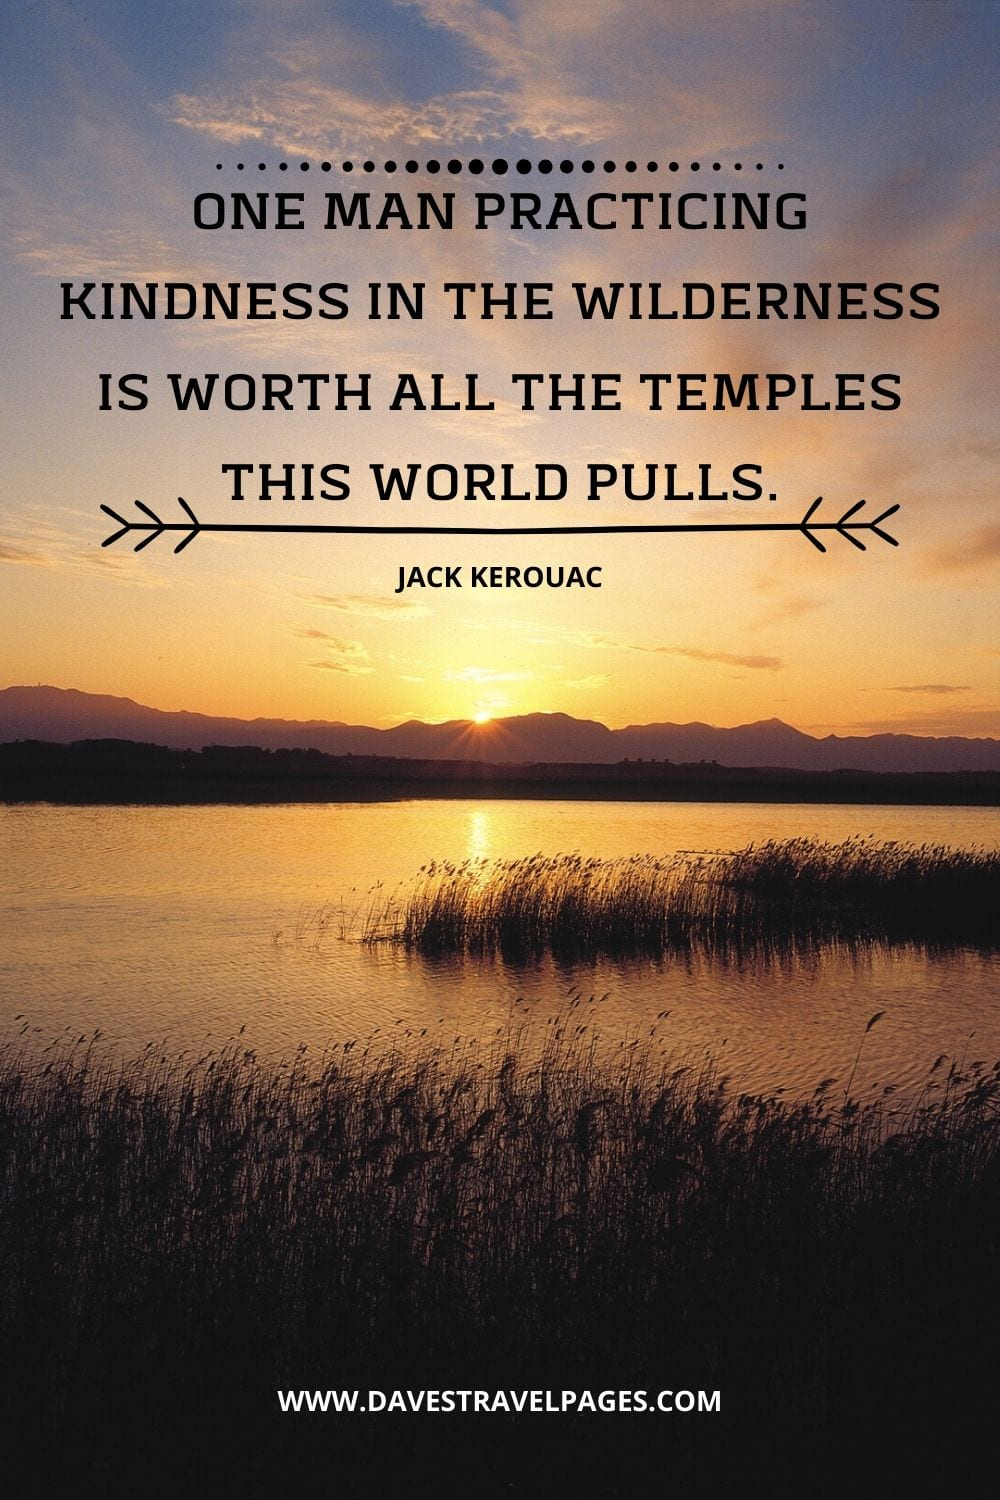 """One man practicing kindness in the wilderness is worth all the temples this world pulls."" - Quote from The Dharma Bums"